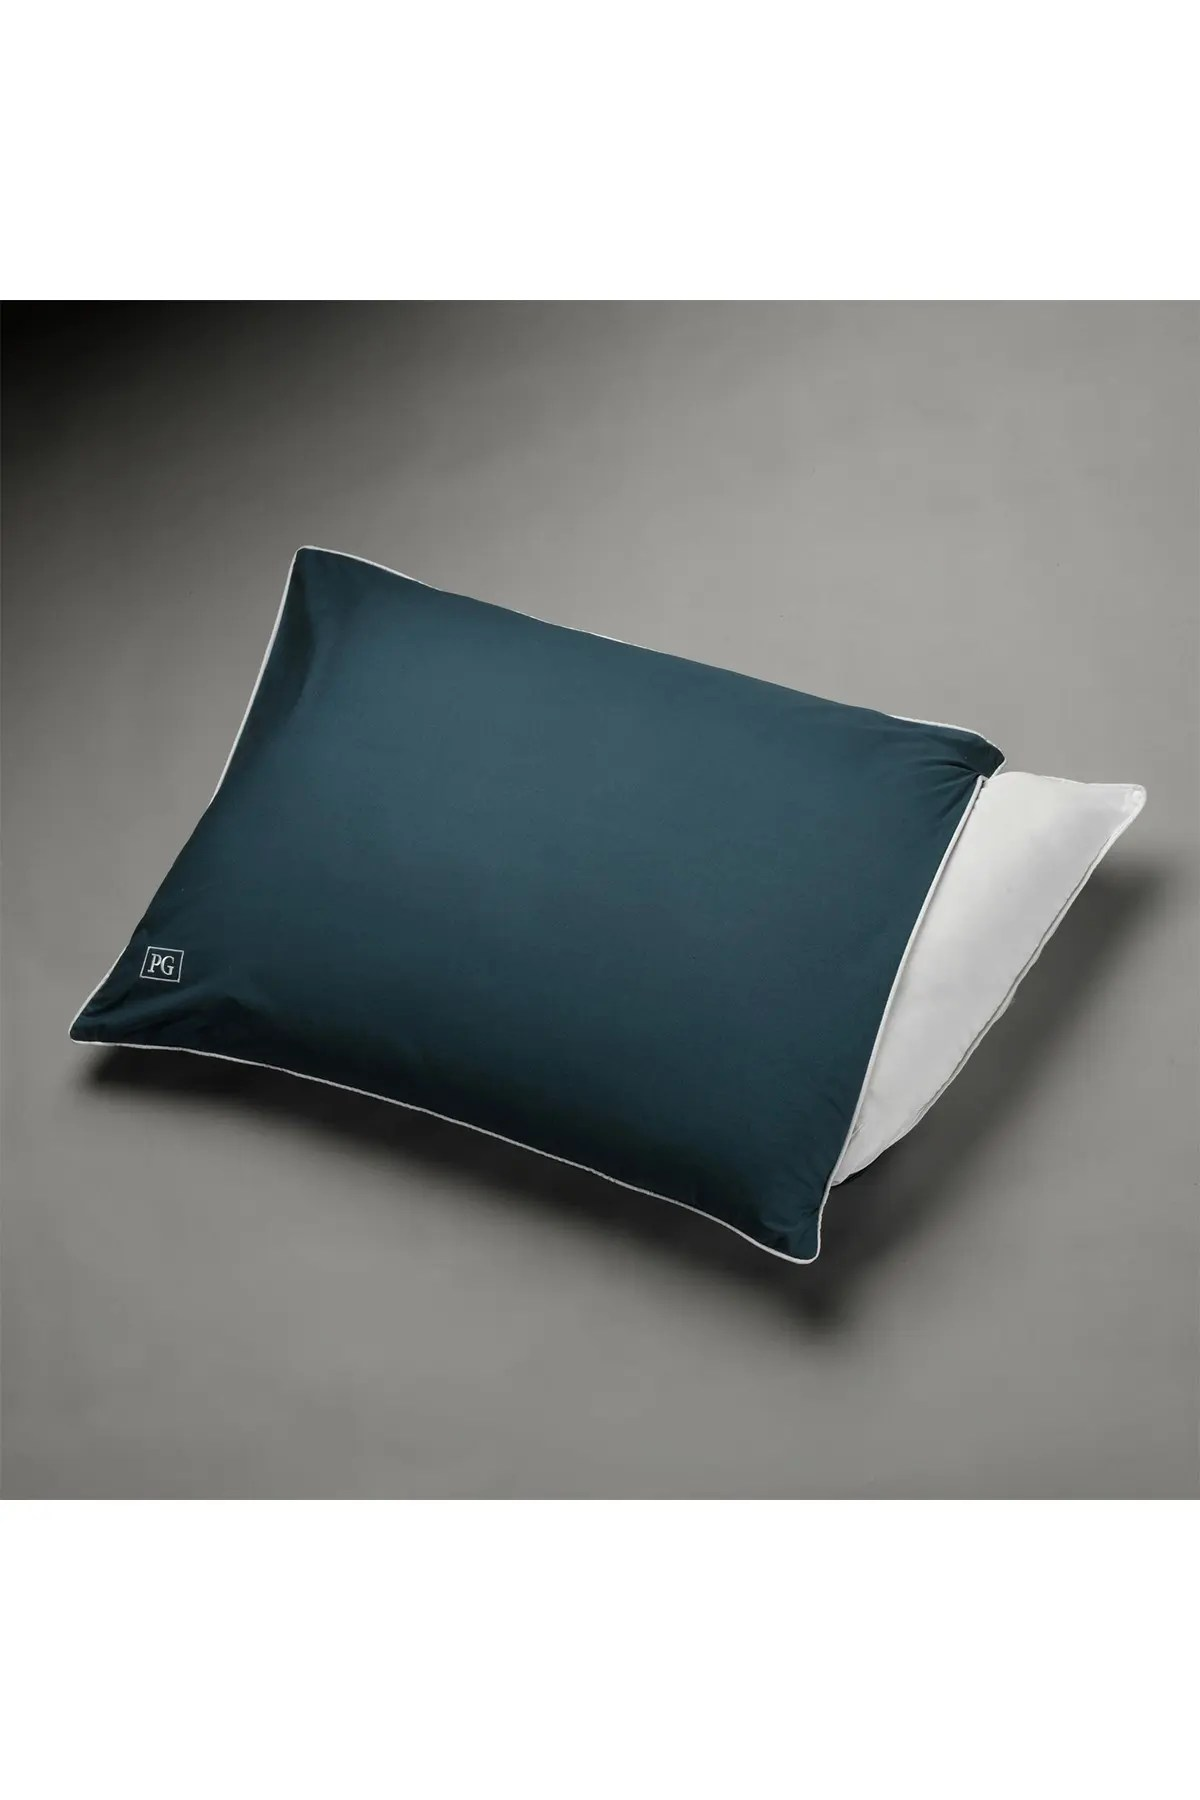 pillow guy down alternative stomach sleeper soft pillow with micronone technology king size nordstrom rack